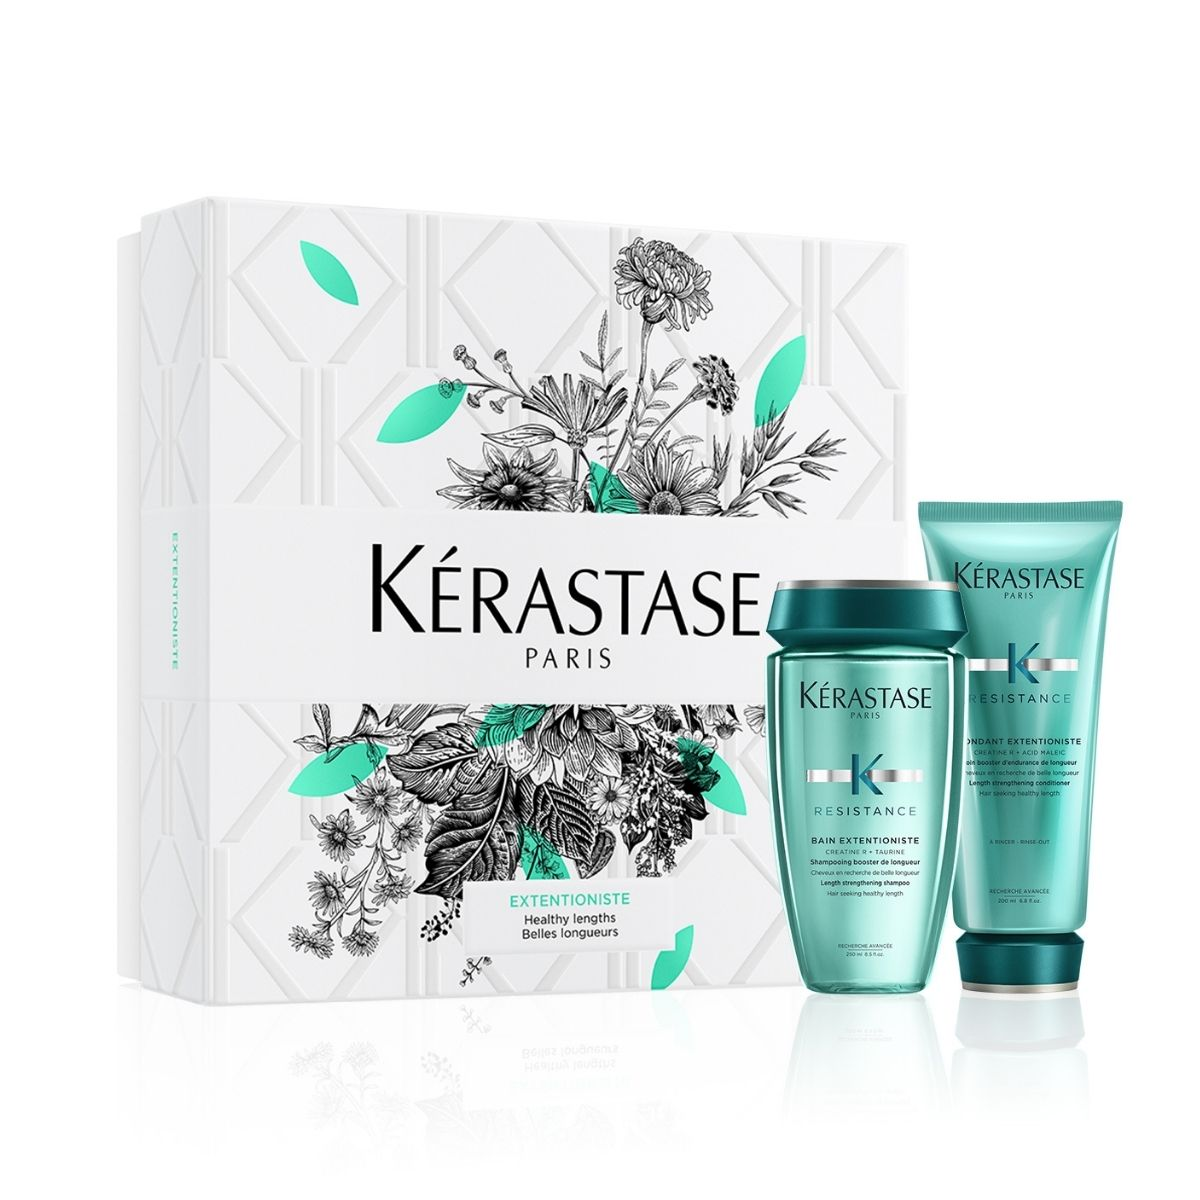 Kerastase Extentioniste Duo Gift